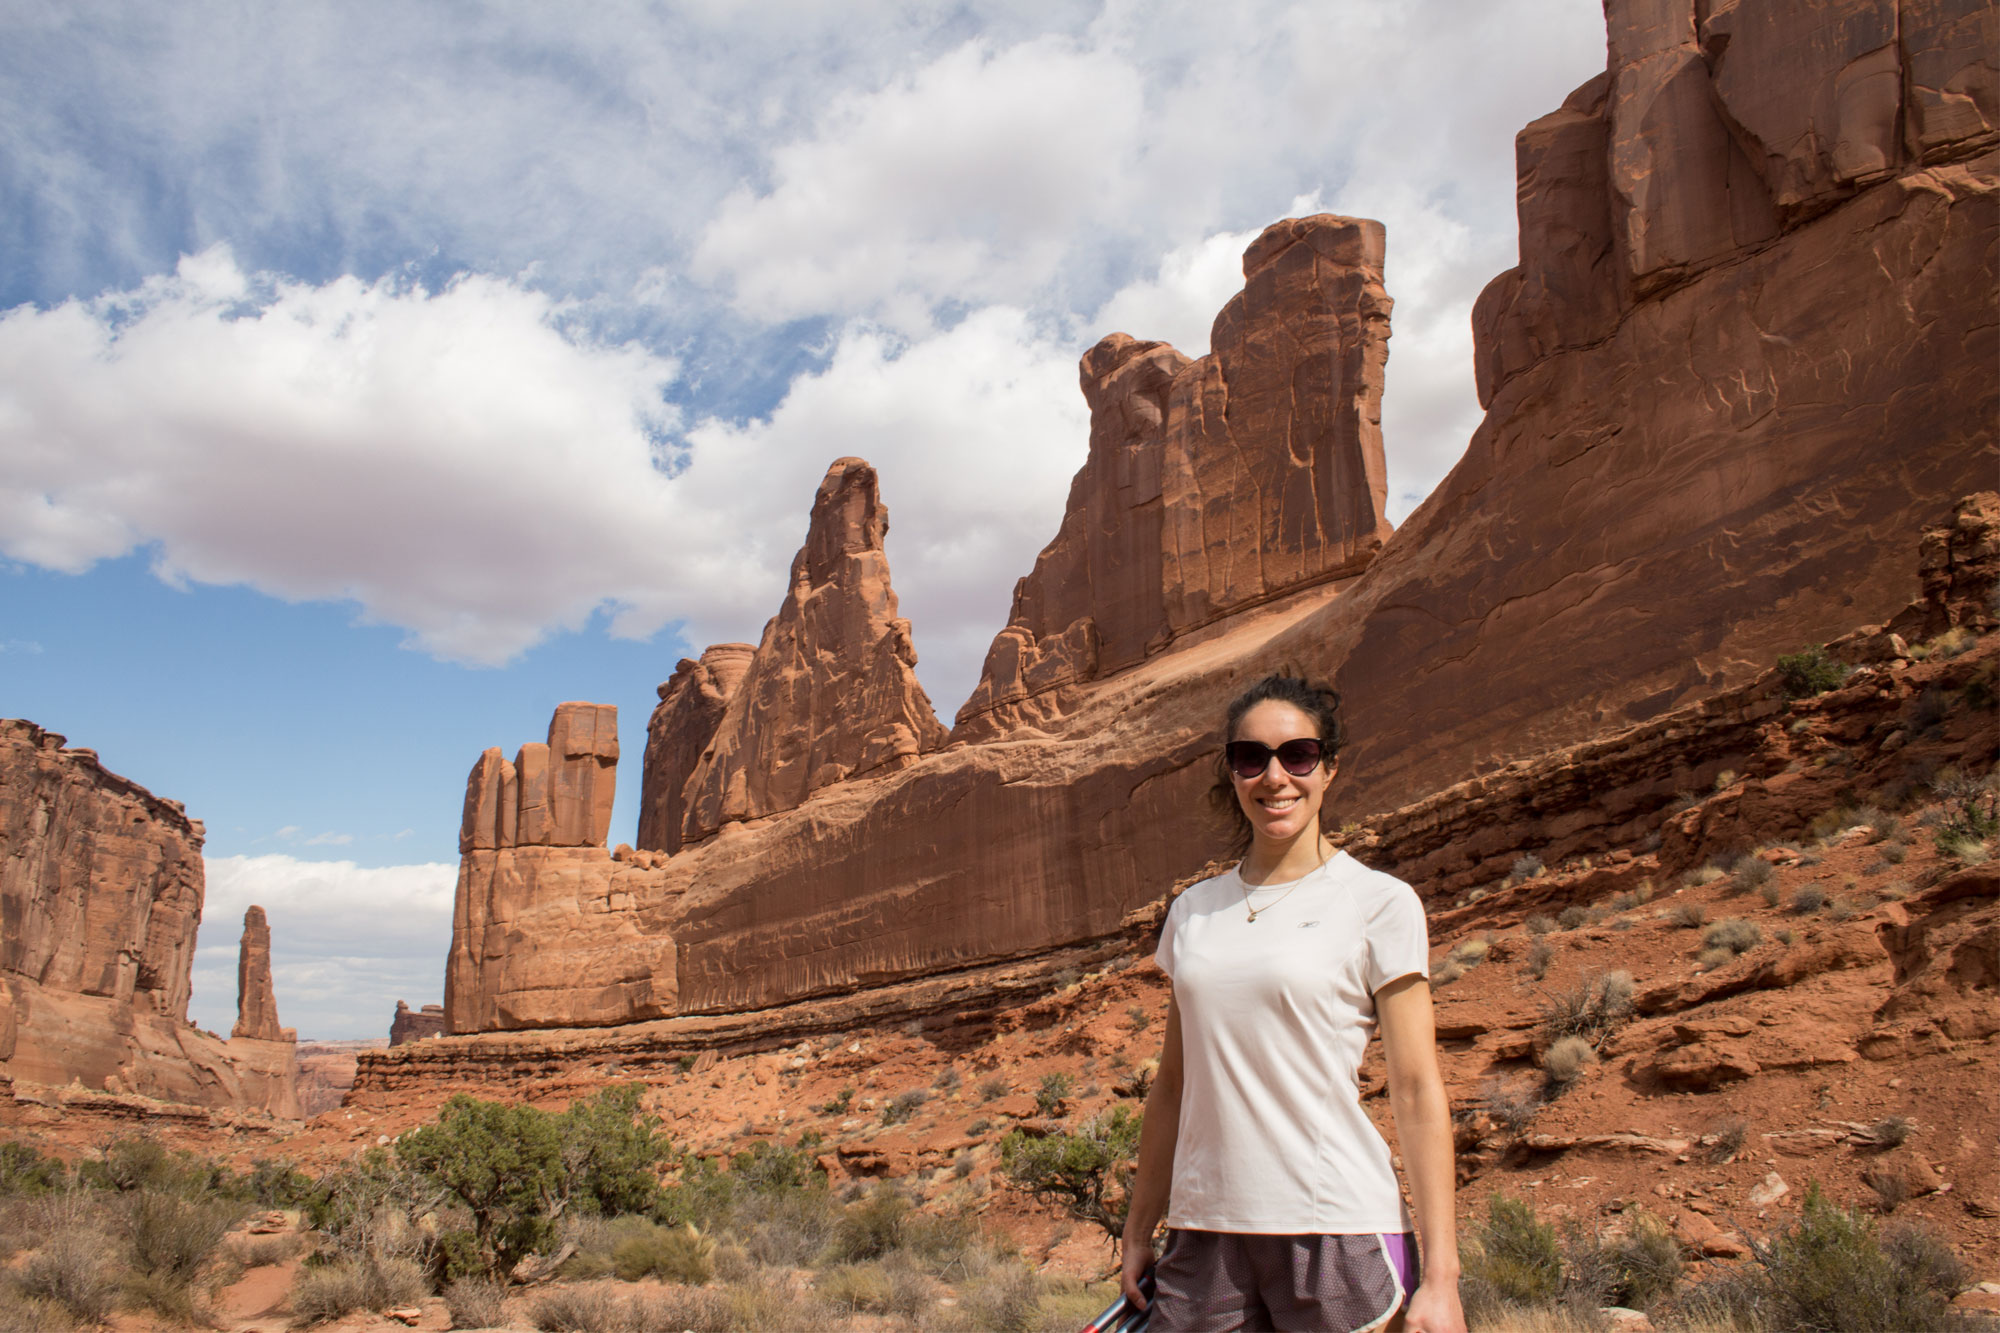 Amy at Park Avenue, Arches National Park